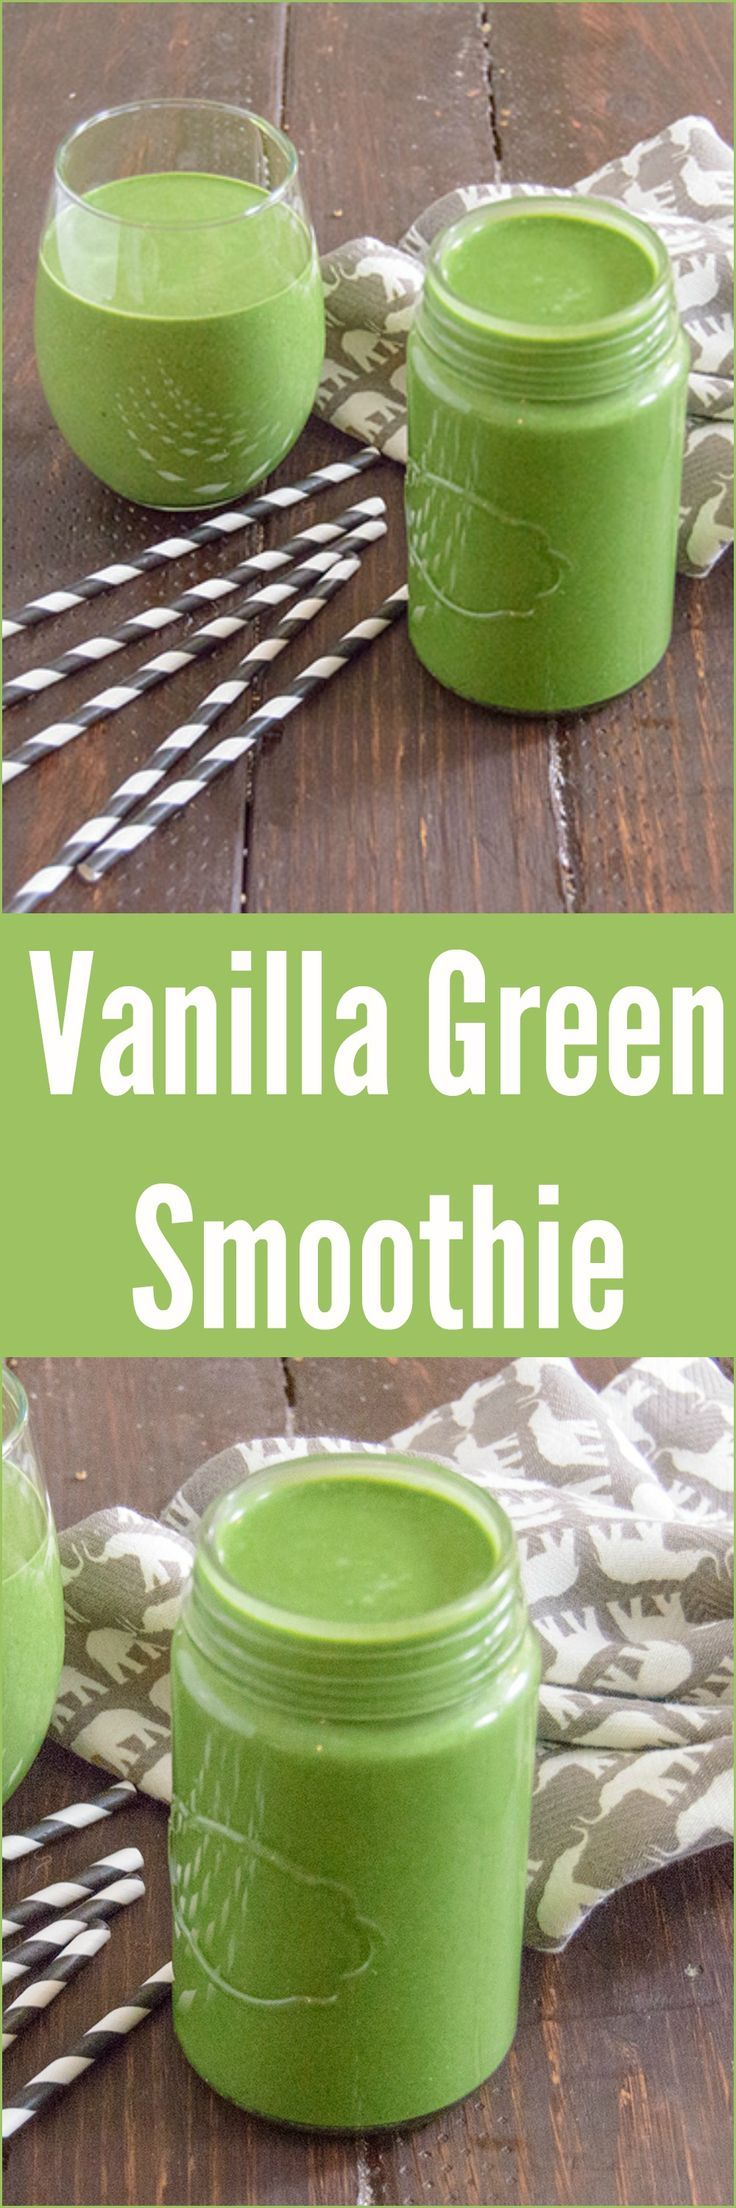 Protein Packed Vanilla Green Smoothie - start your day off with vegetables that you will never taste! This vanilla smoothie is low fat, high protein, vegan and gluten free! Super simple to go breakfast idea!